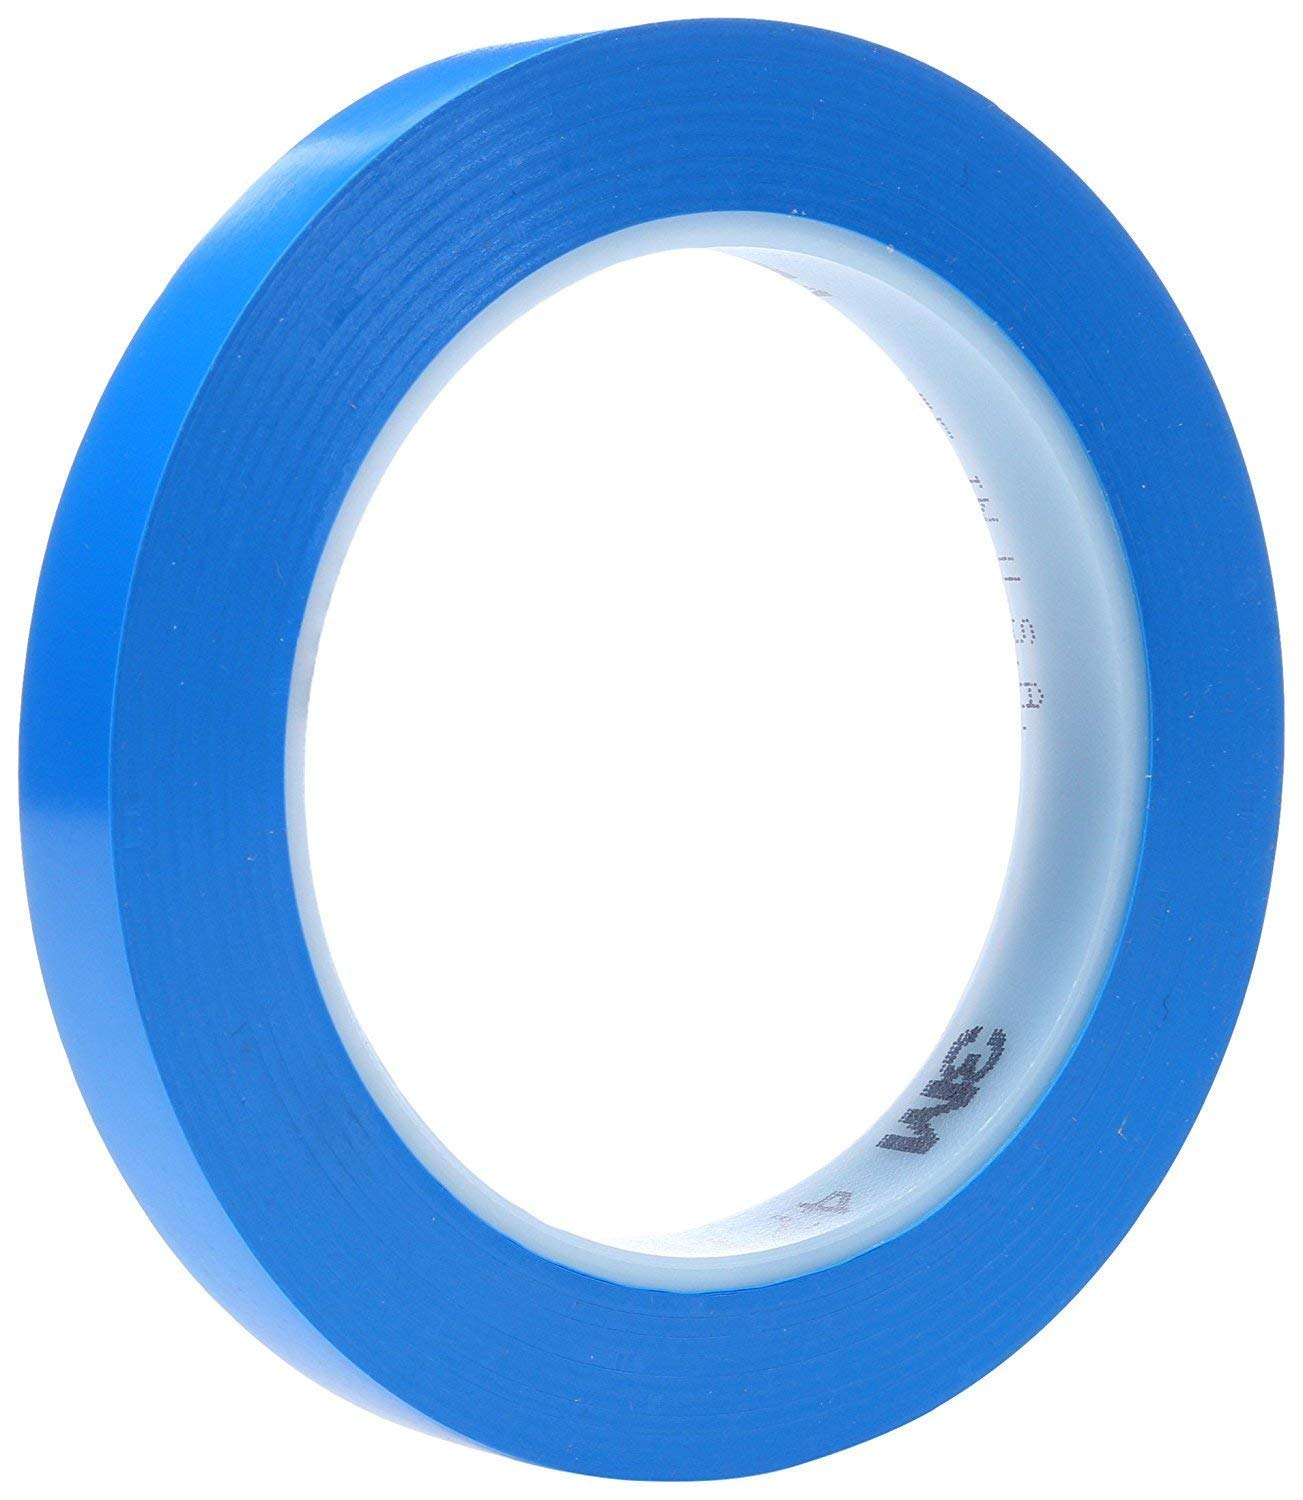 1//2 in Width x 36 yd Length Blue Pack of 1 3M 471 Marking Tape 5.2 mil Thick,